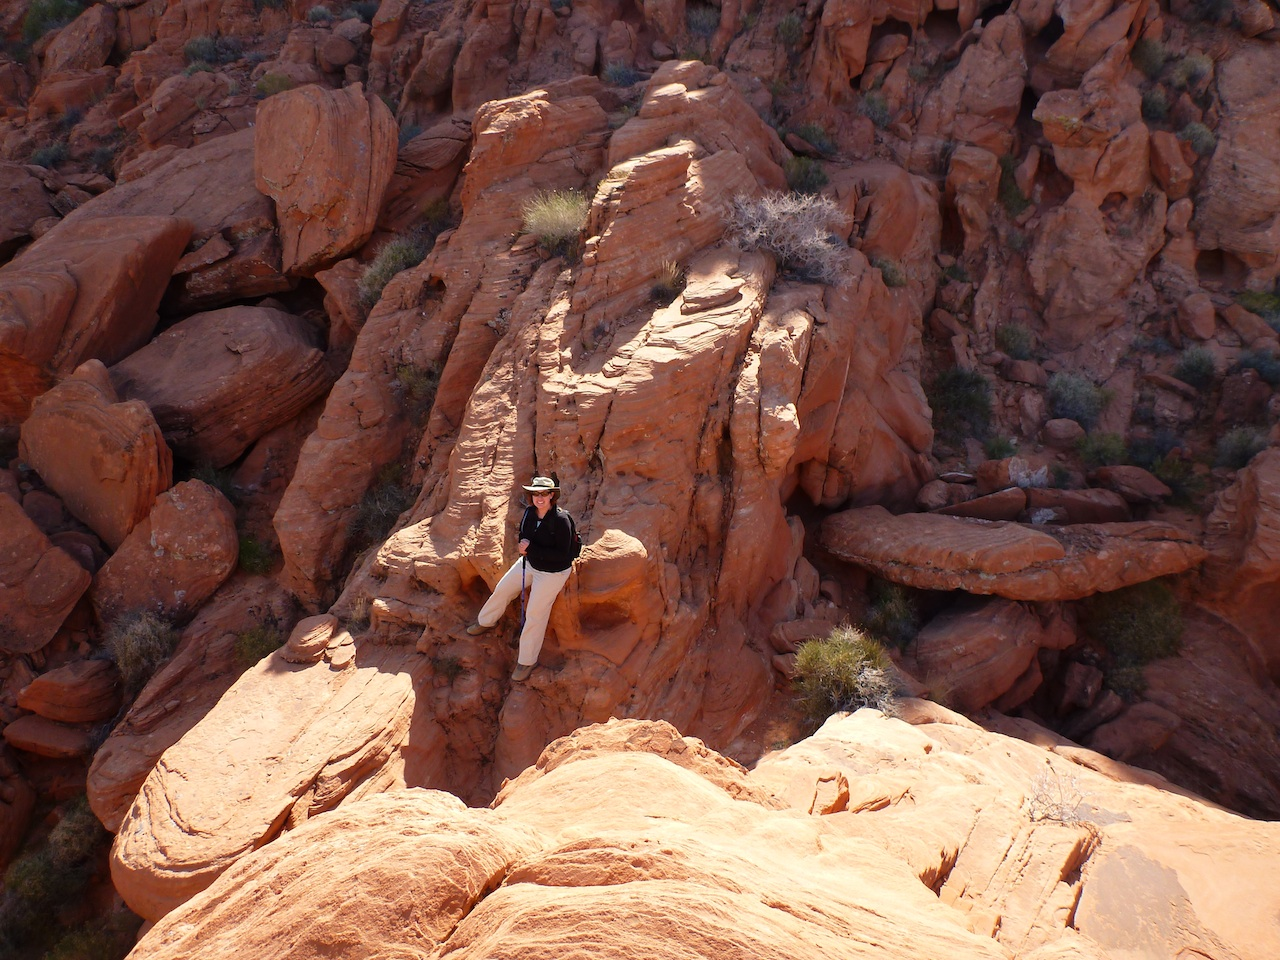 Me Around Some Of The Red Rock Formations